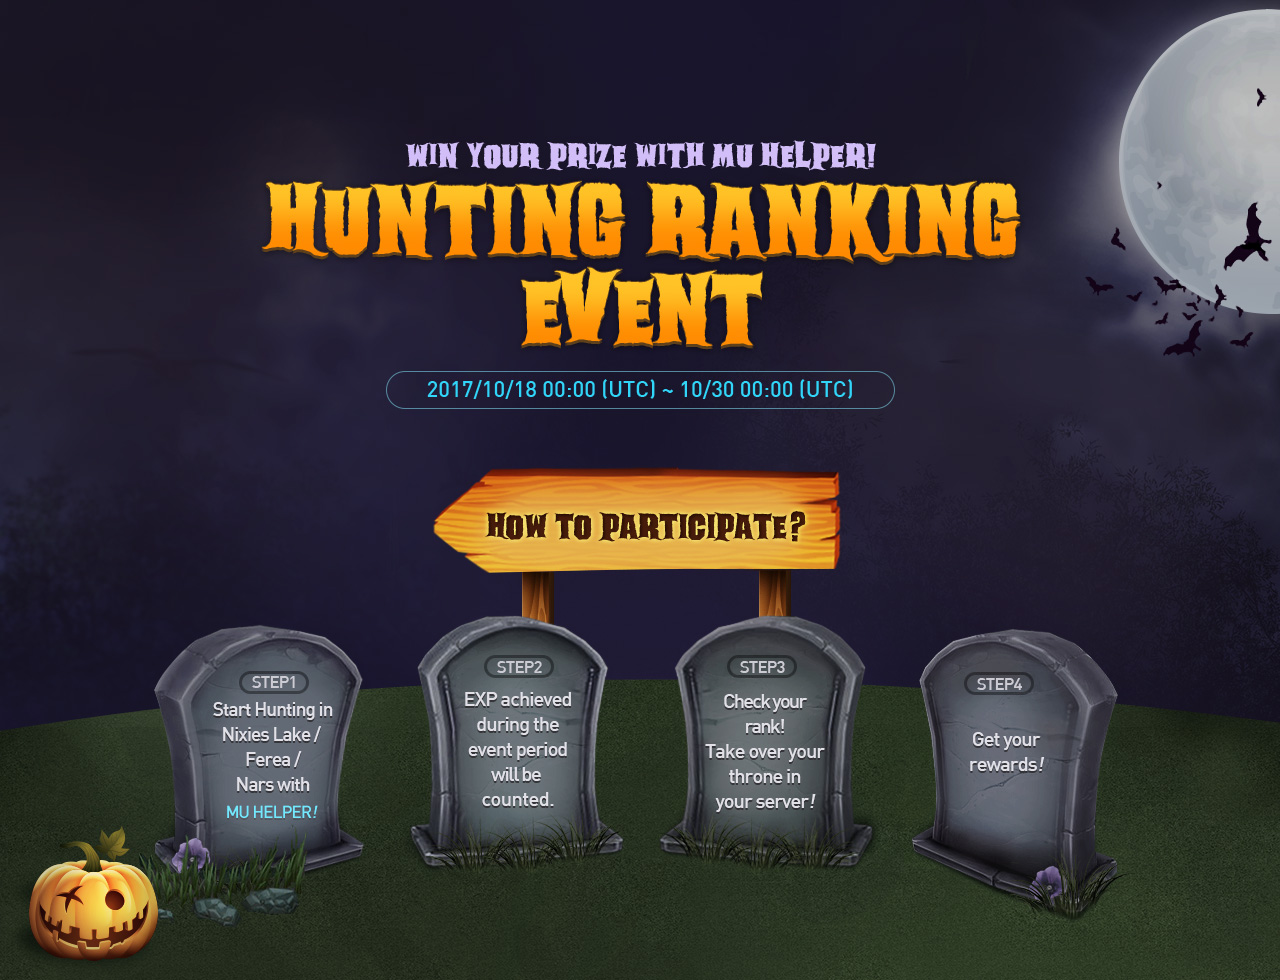 Hunting Ranking Event